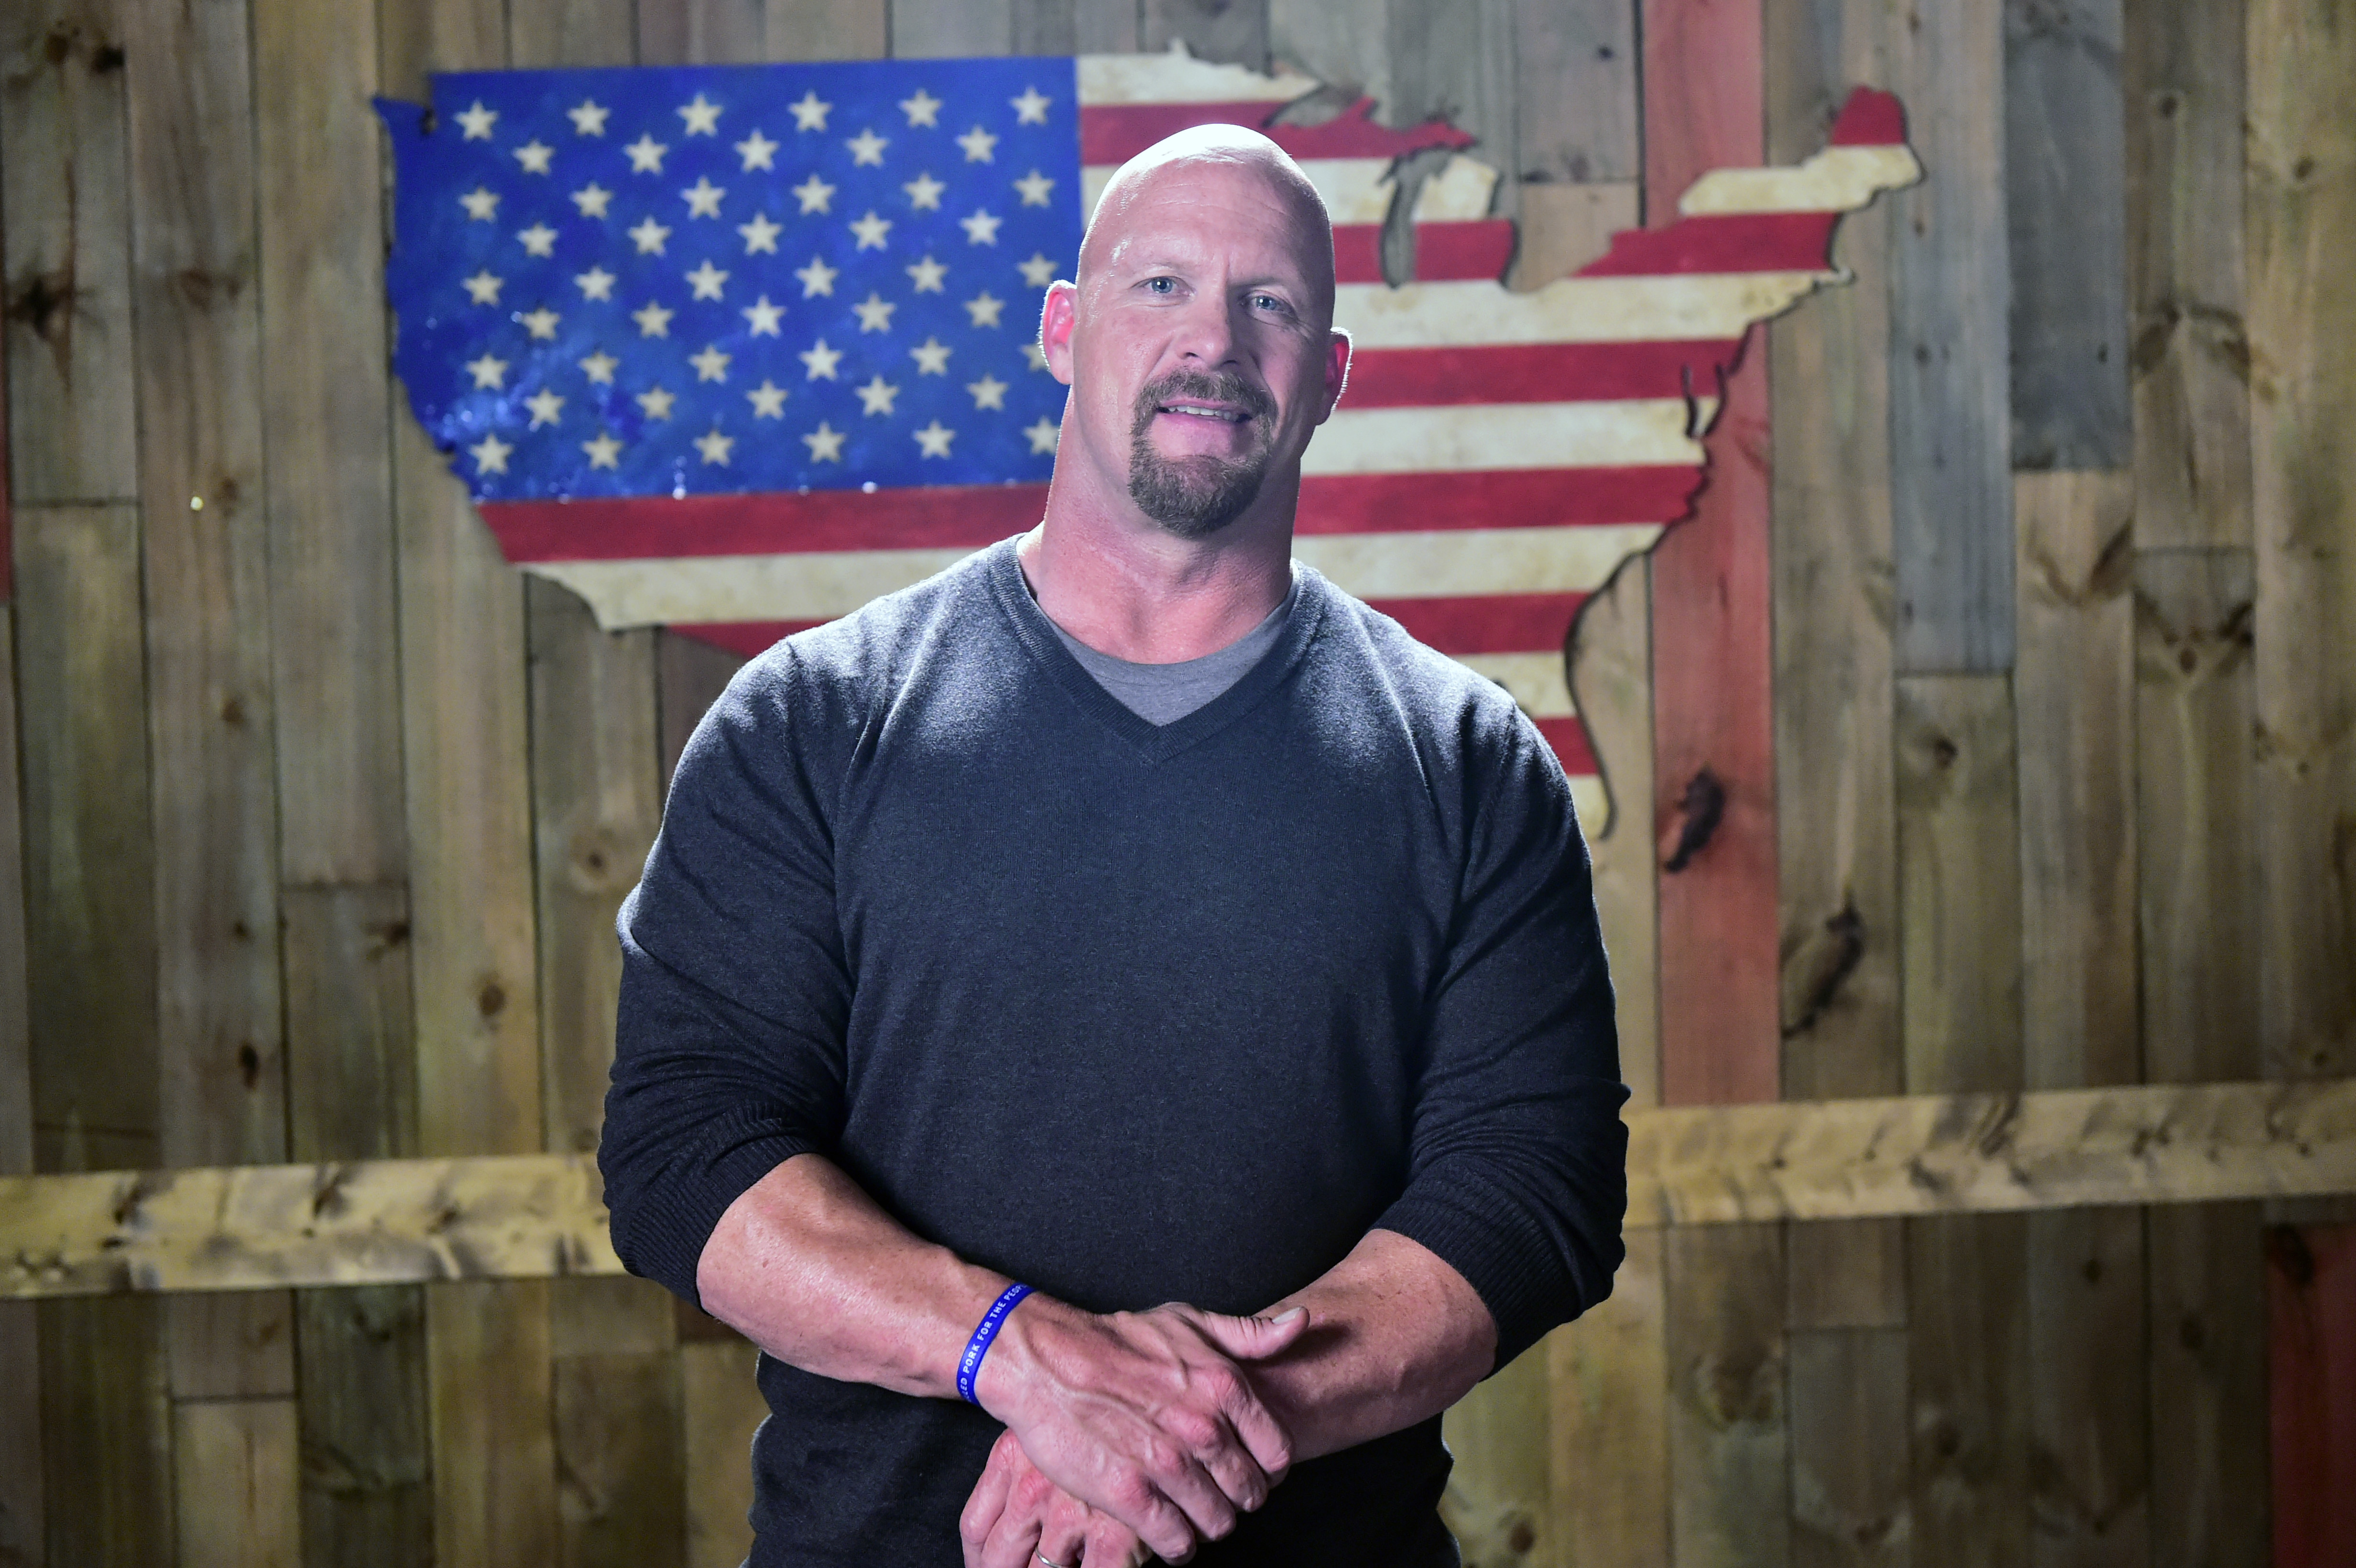 Old Post From 'Stone Cold' Steve Austin Resurfaces Of Him Slamming The Use Of The Confederate Flag